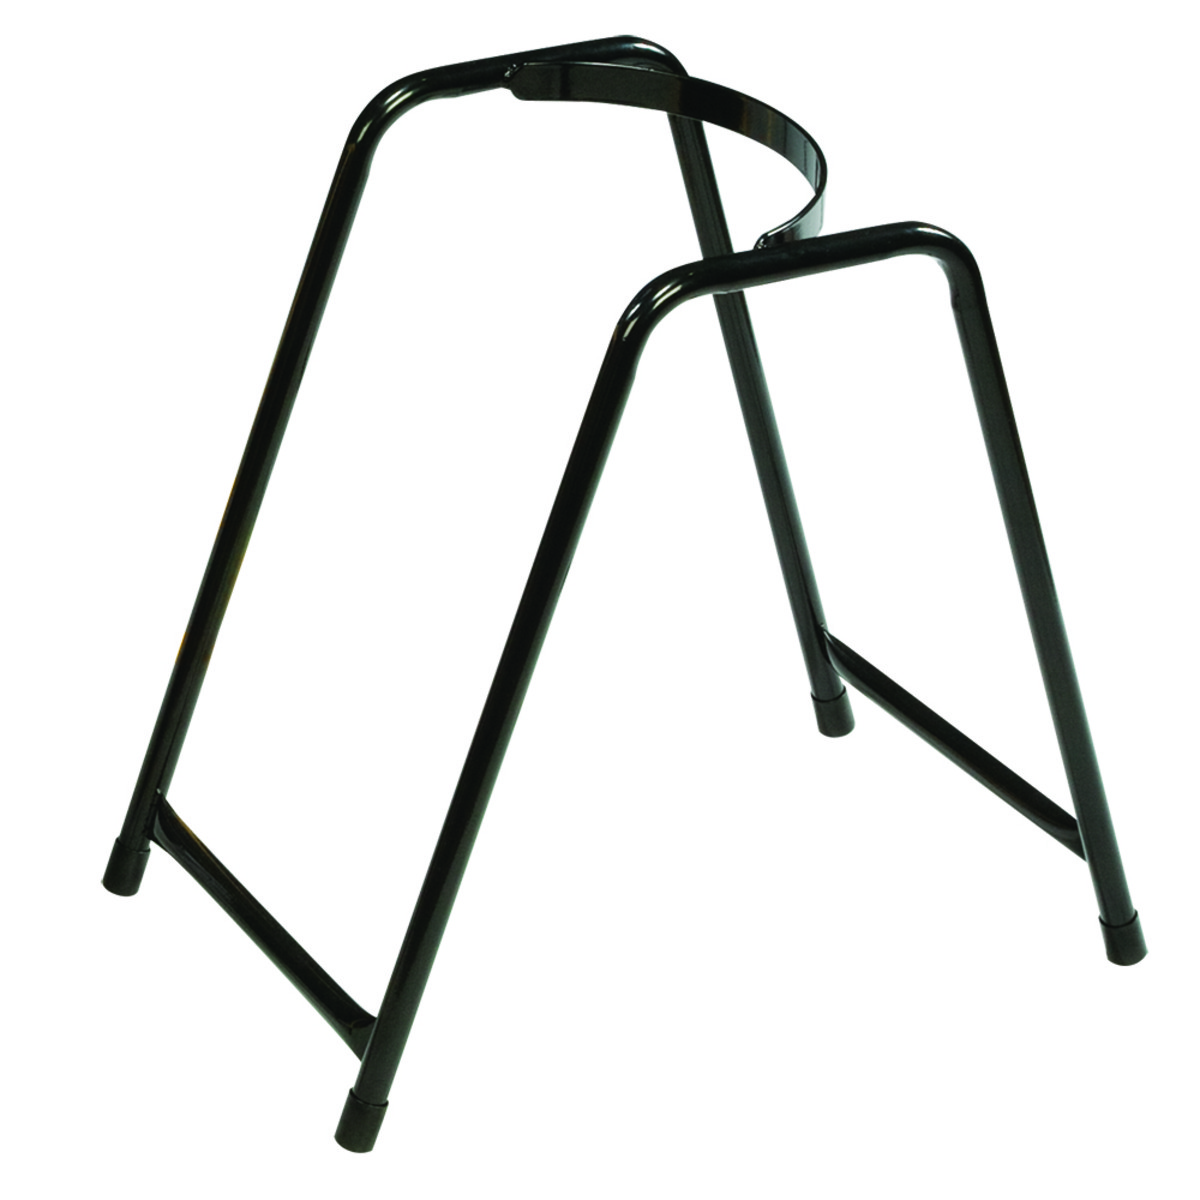 Traditional Tubular Steel Golf Bag Stands (available in Green or Black)